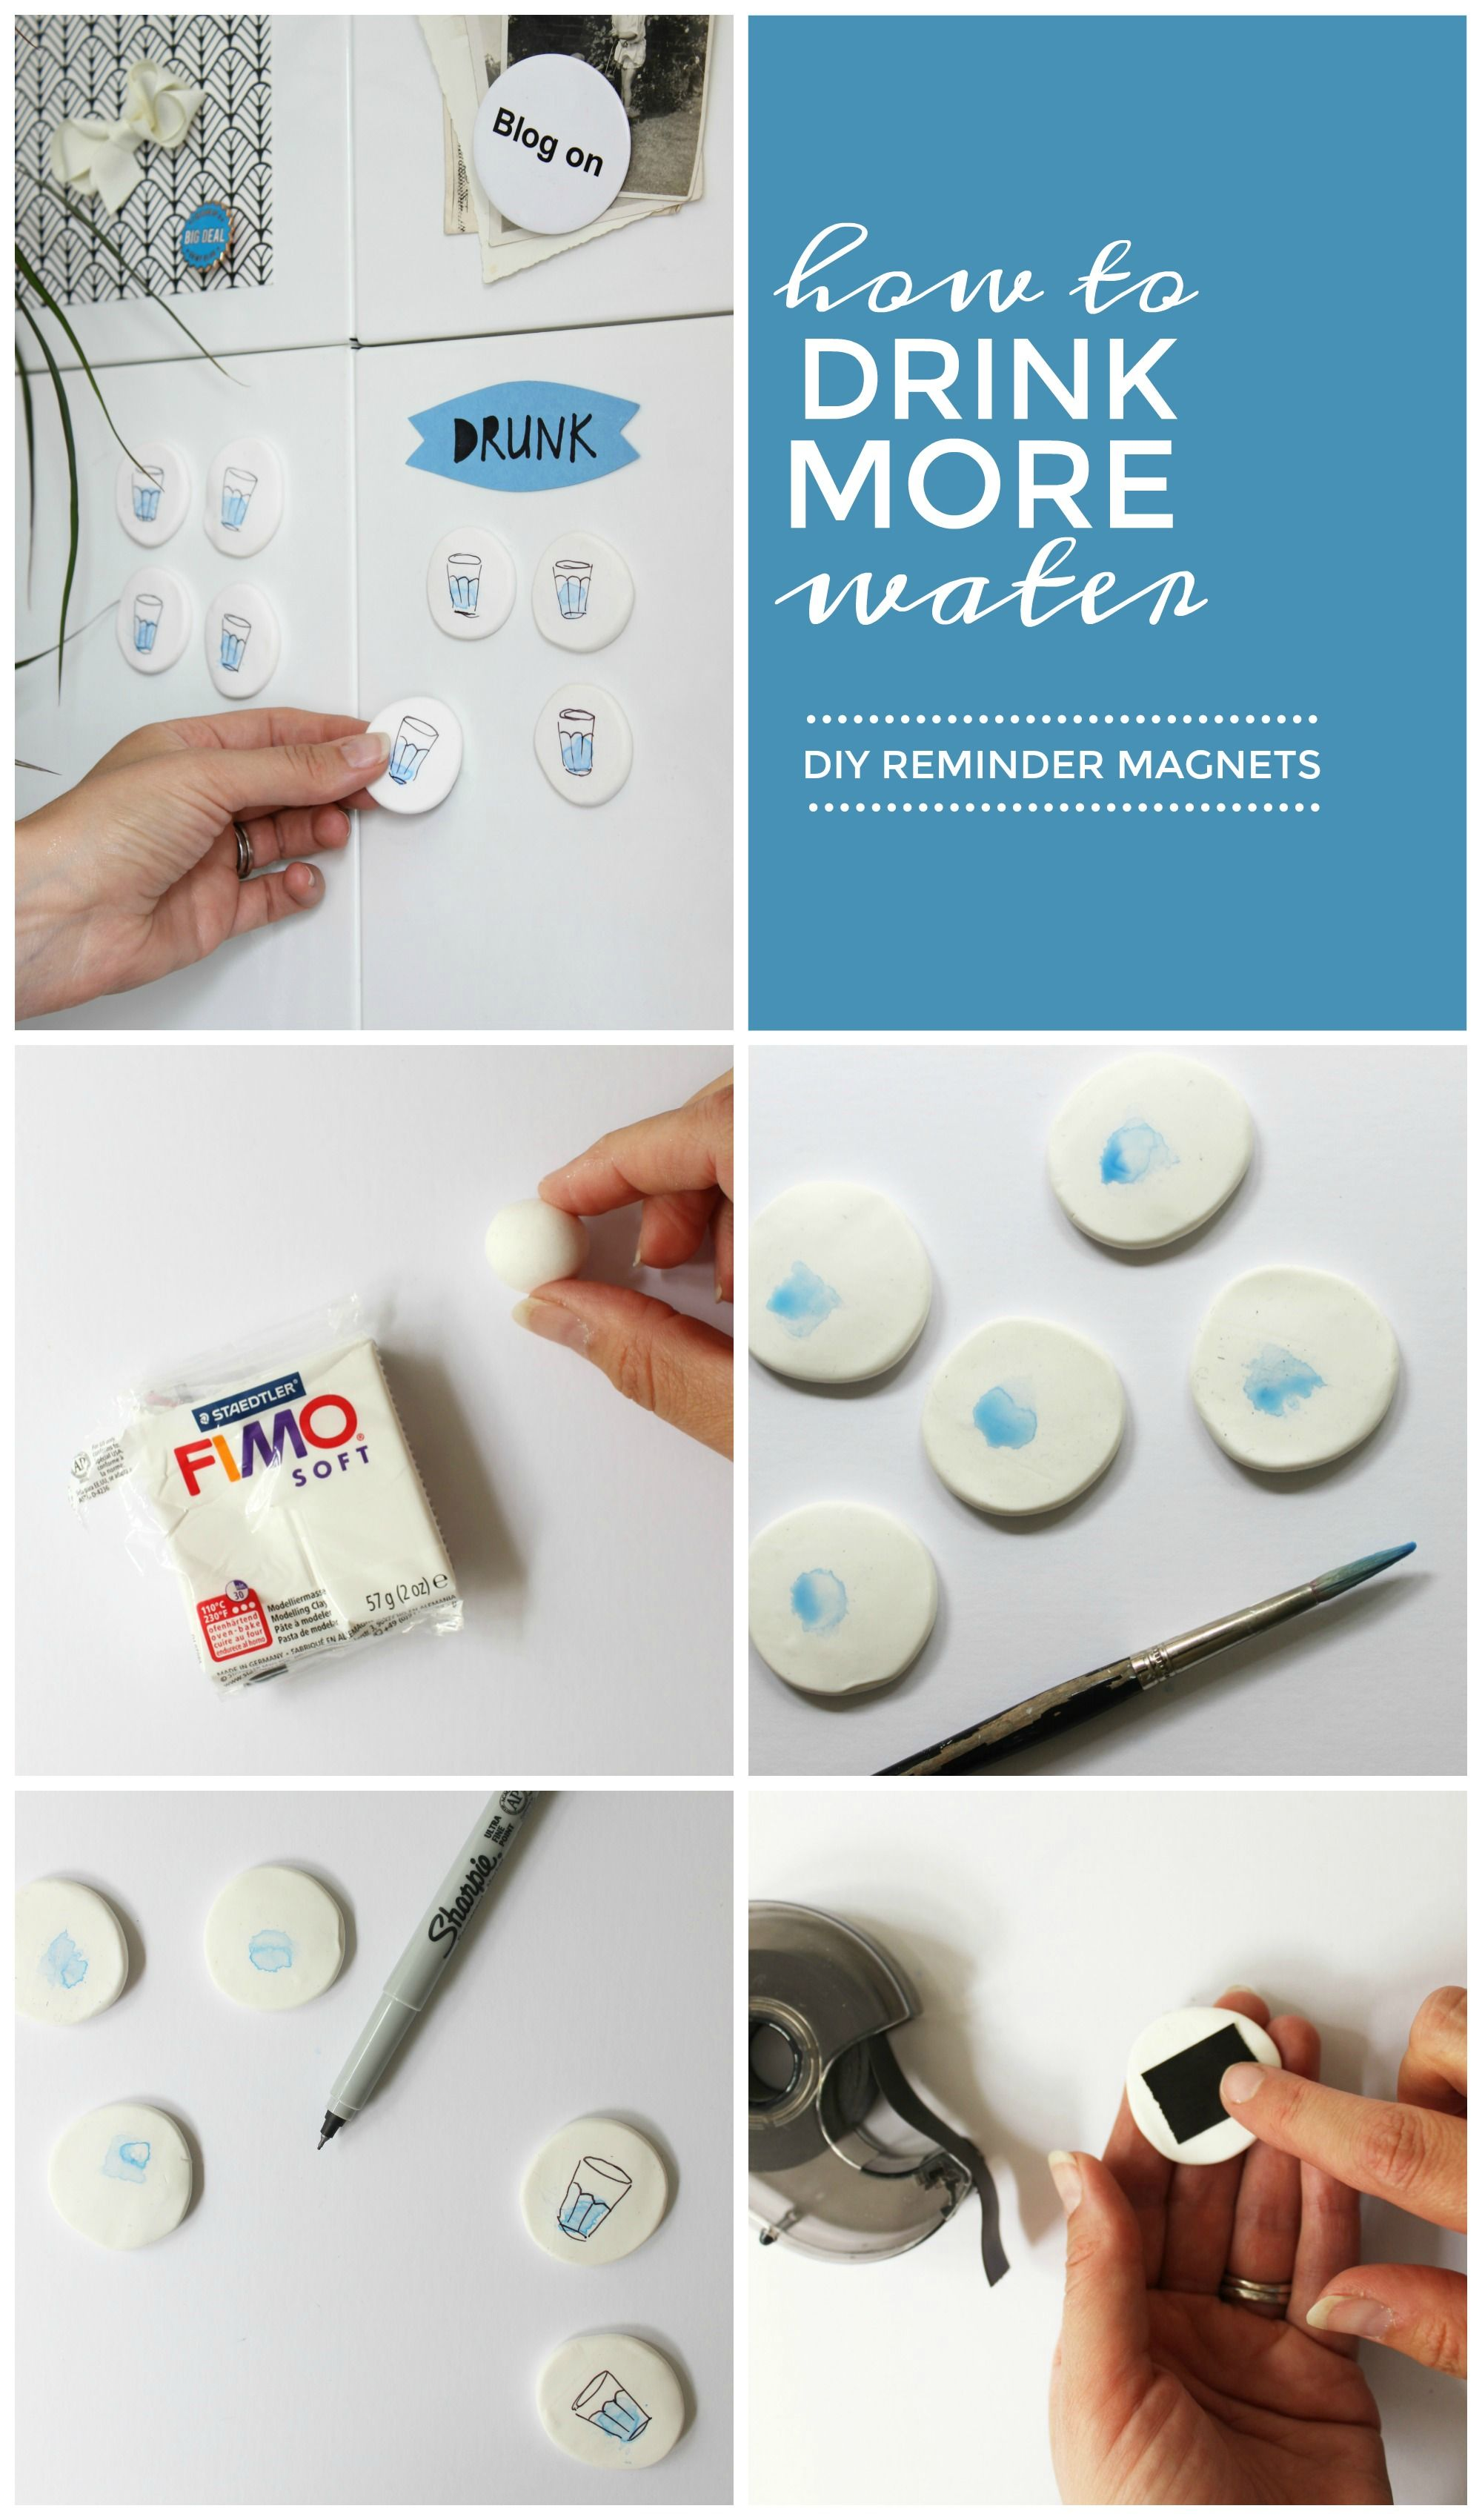 2df7d3815ce1 Do you drink enough water  These quick and easy DIY fridge magnets will  remind you to keep drinking water throughout the day. Click through for the  full ...